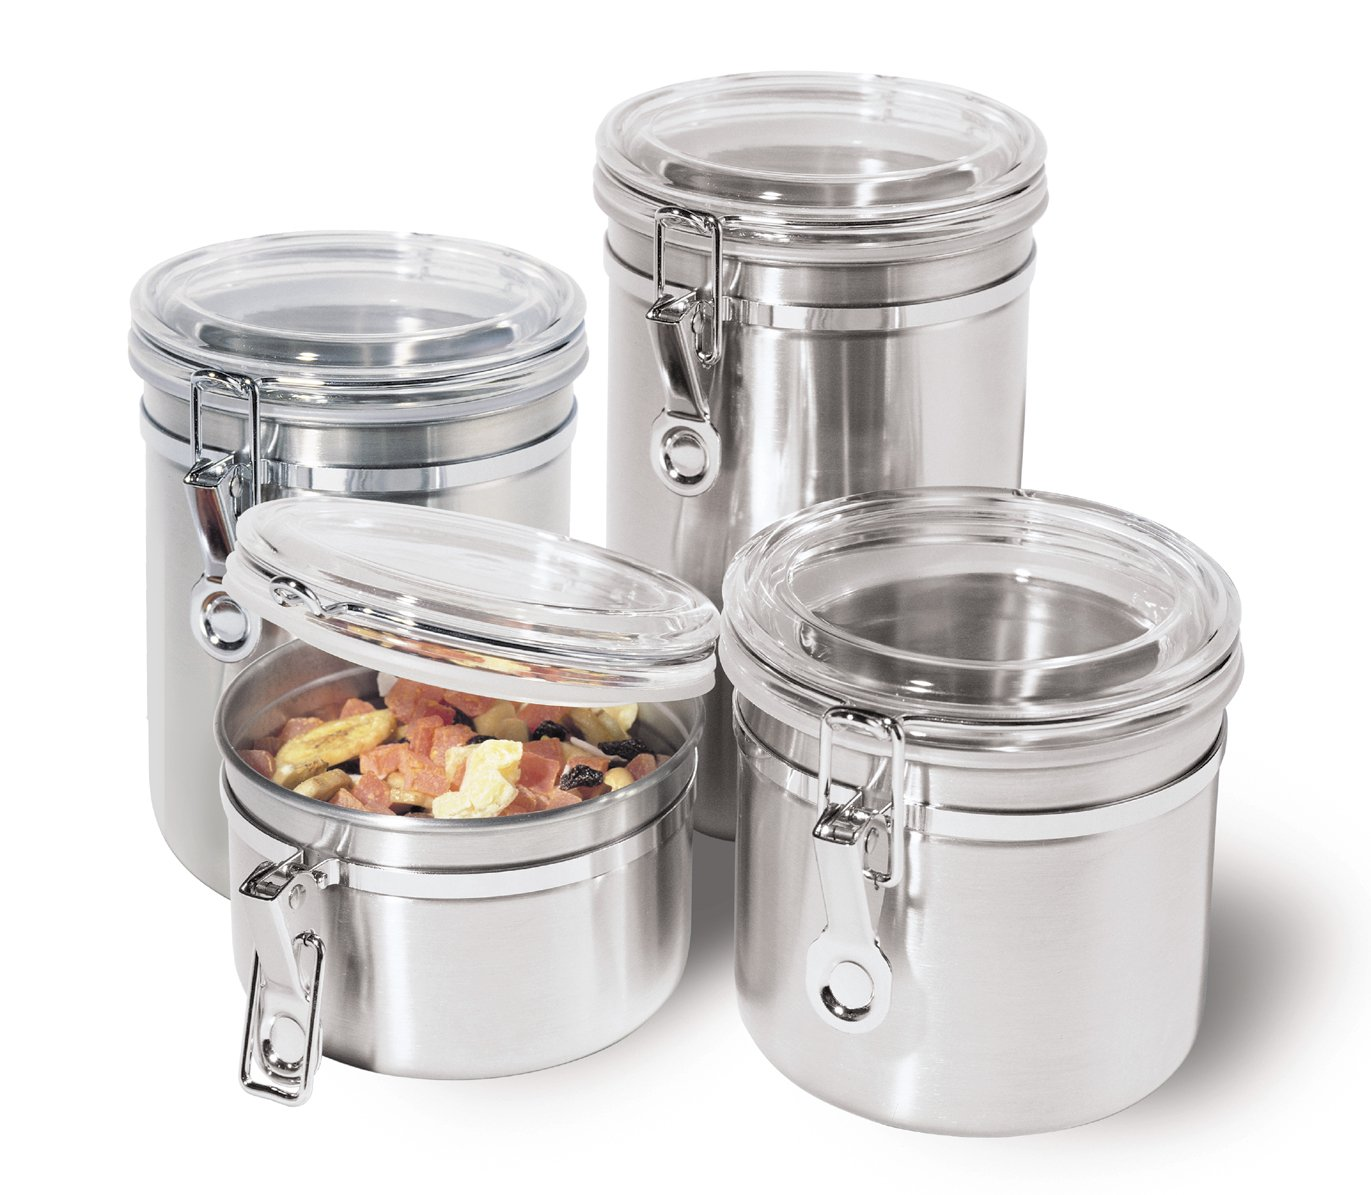 Beau Amazon.com: Oggi 4 Piece Stainless Steel Canister Set With Acrylic Lid And  Clamp Set Includes 1 Each: 26oz, 36oz, 47oz, 62oz.: Kitchen Storage And ...